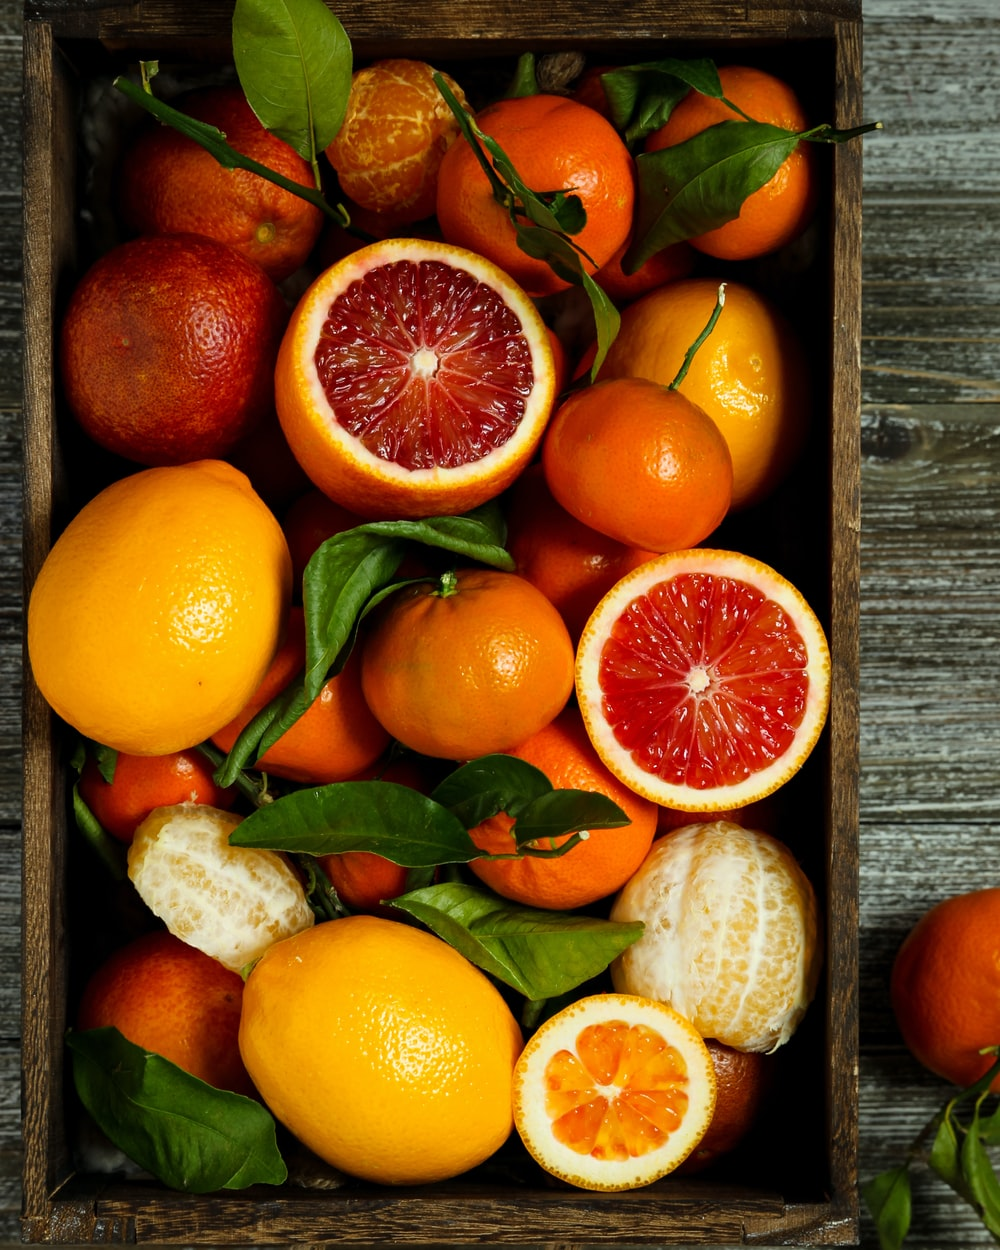 orange fruits on brown wooden table